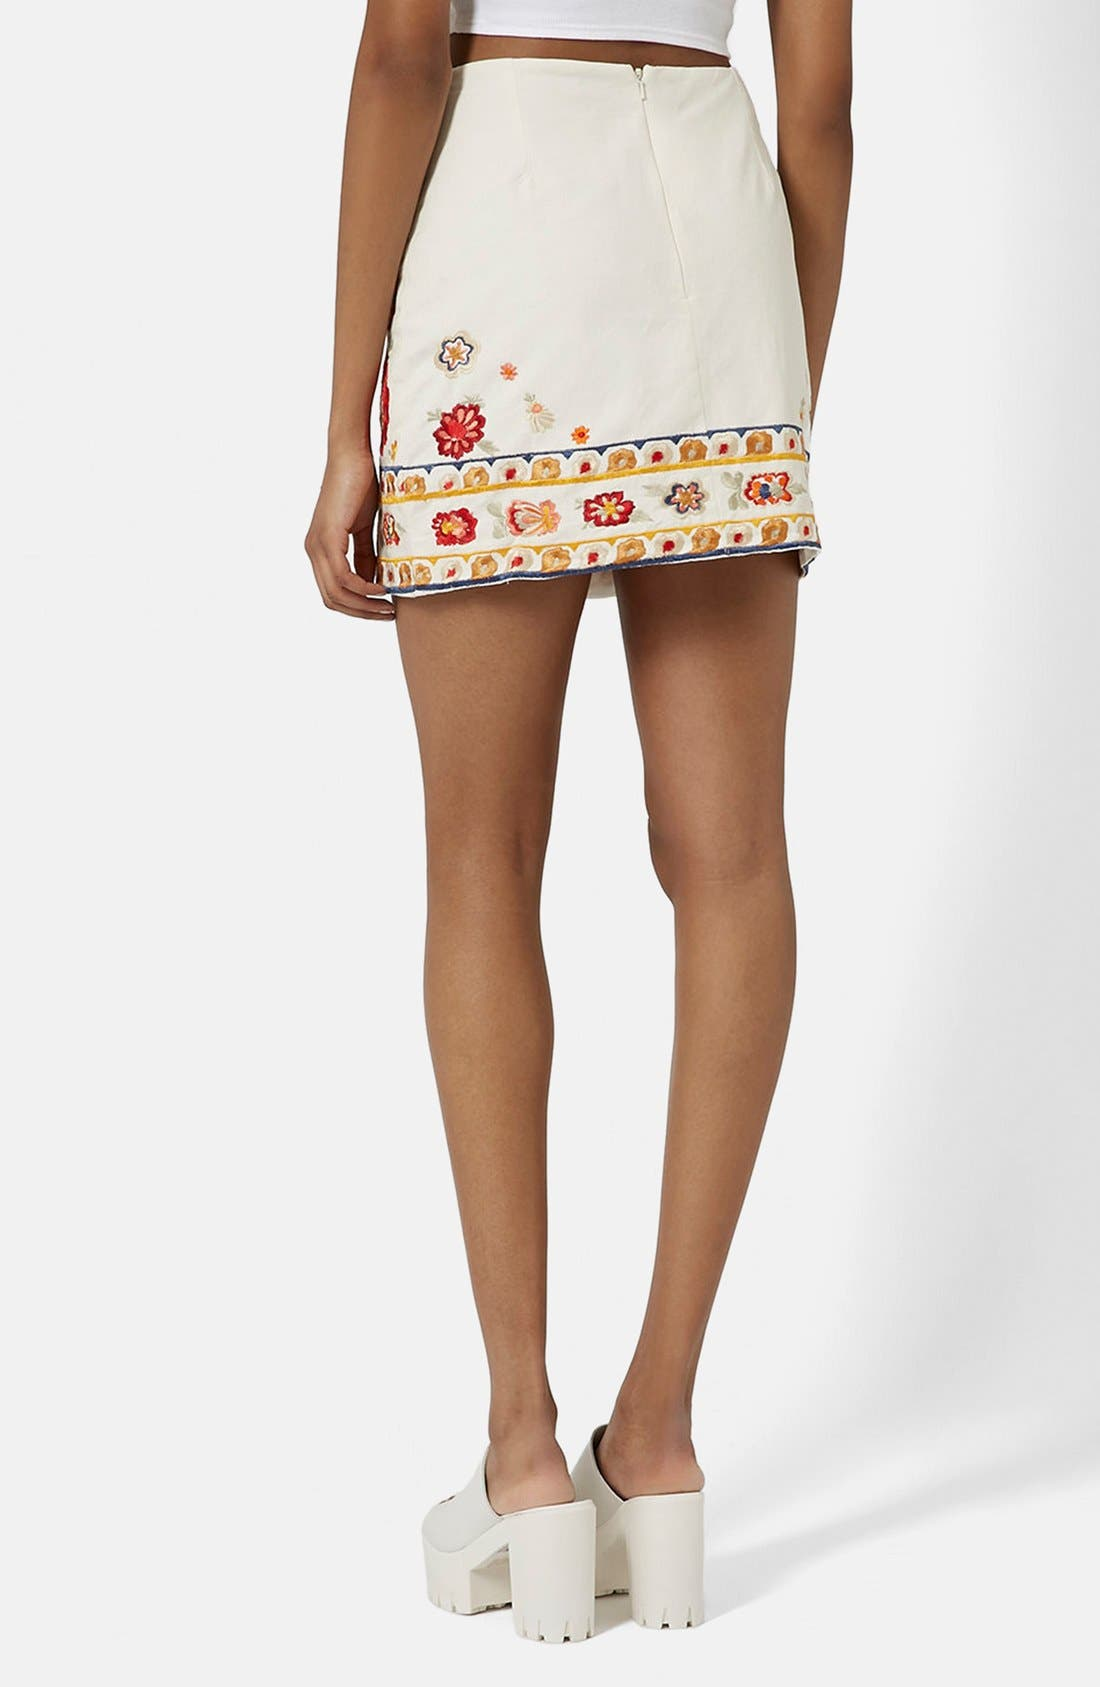 TOPSHOP, 'Troubadour' Embroidered Miniskirt, Alternate thumbnail 3, color, 900